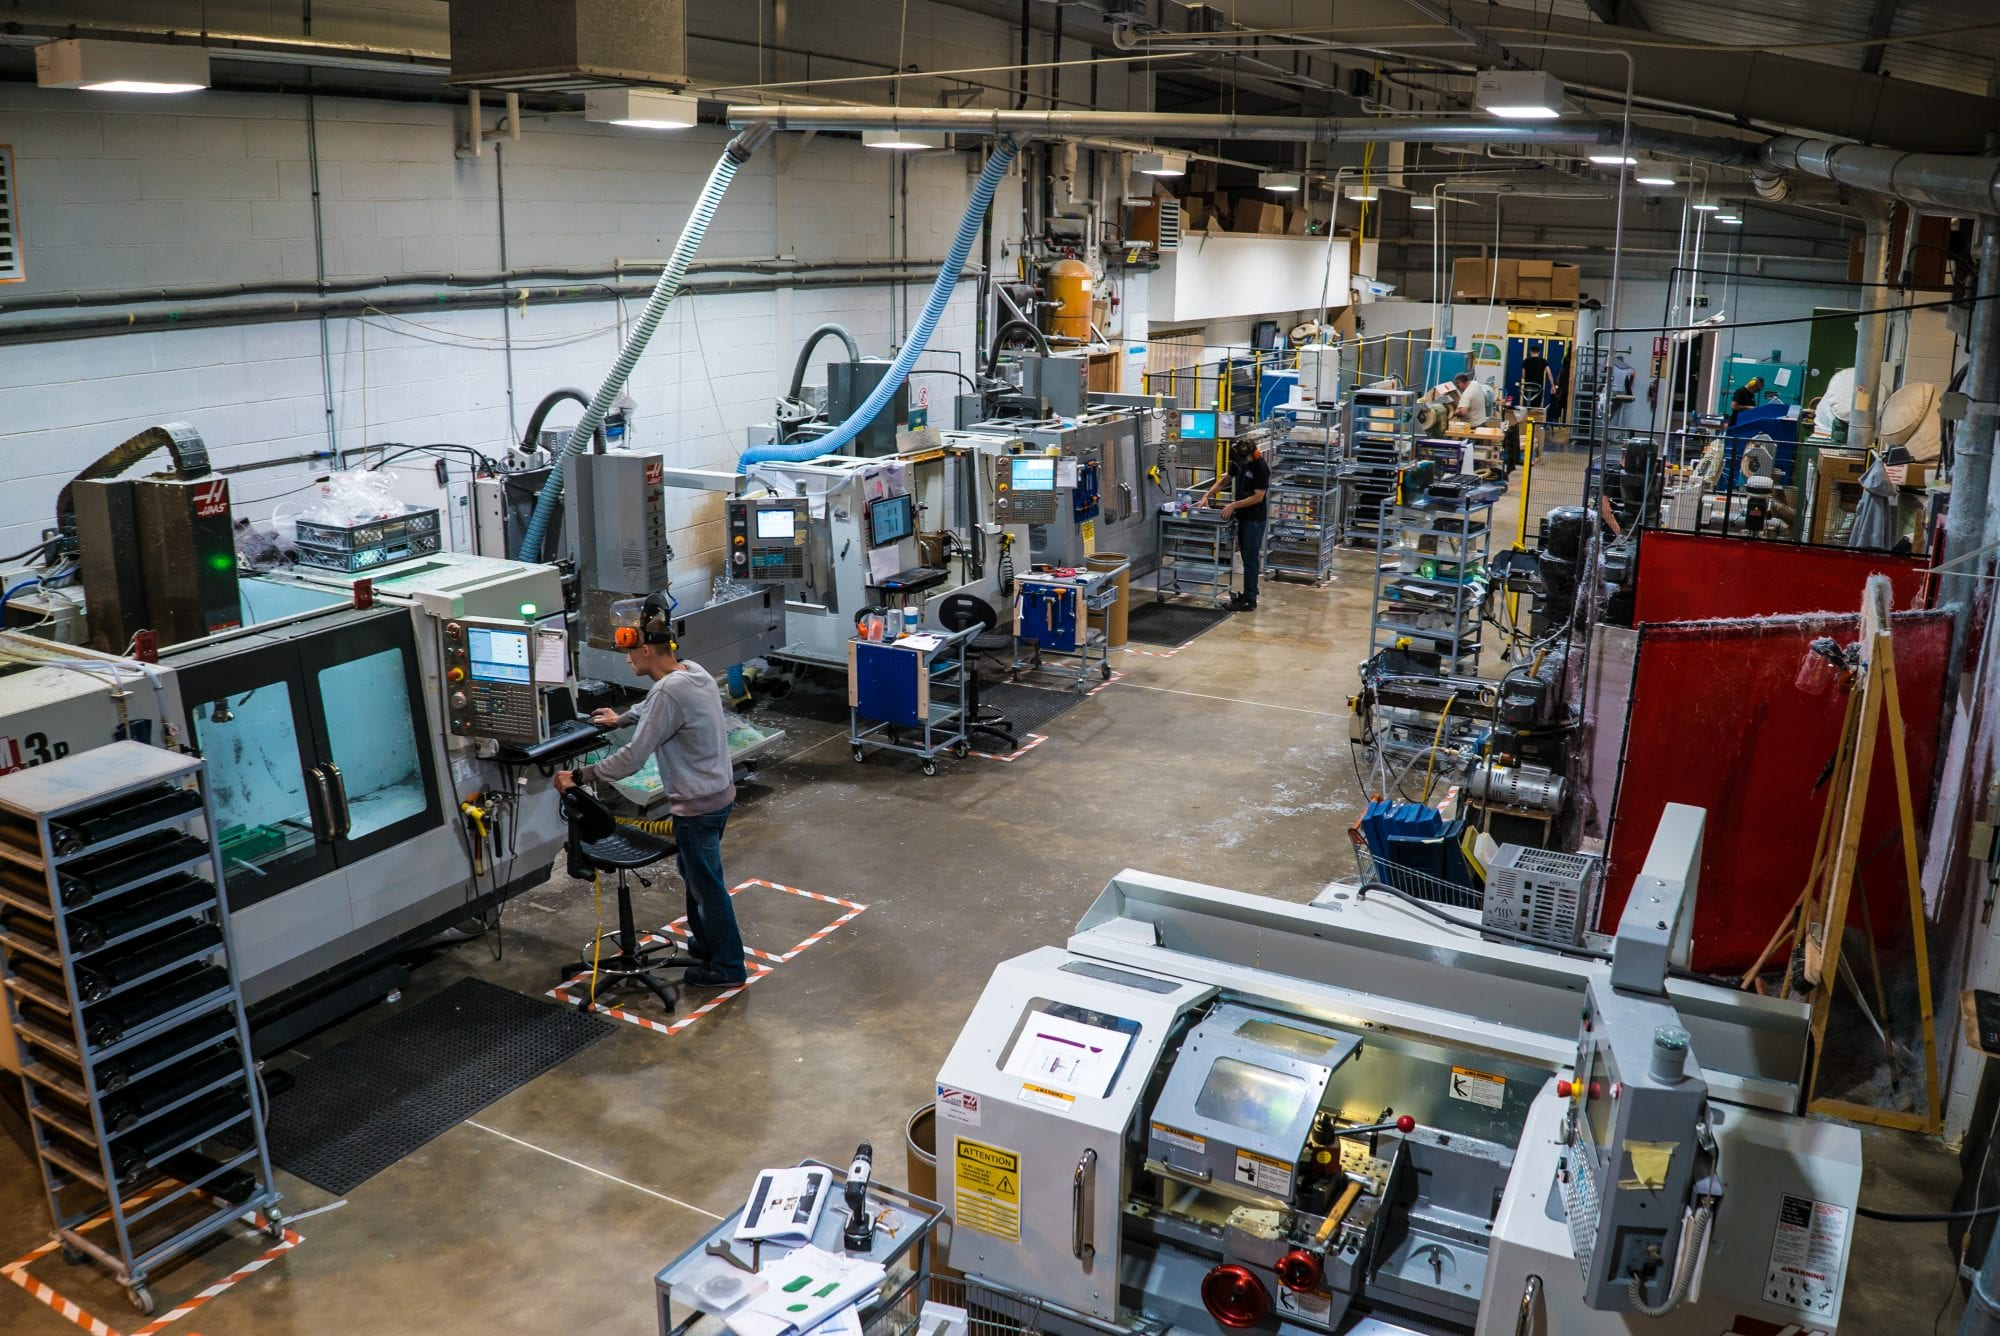 a large machine shop with CNC machine and operators